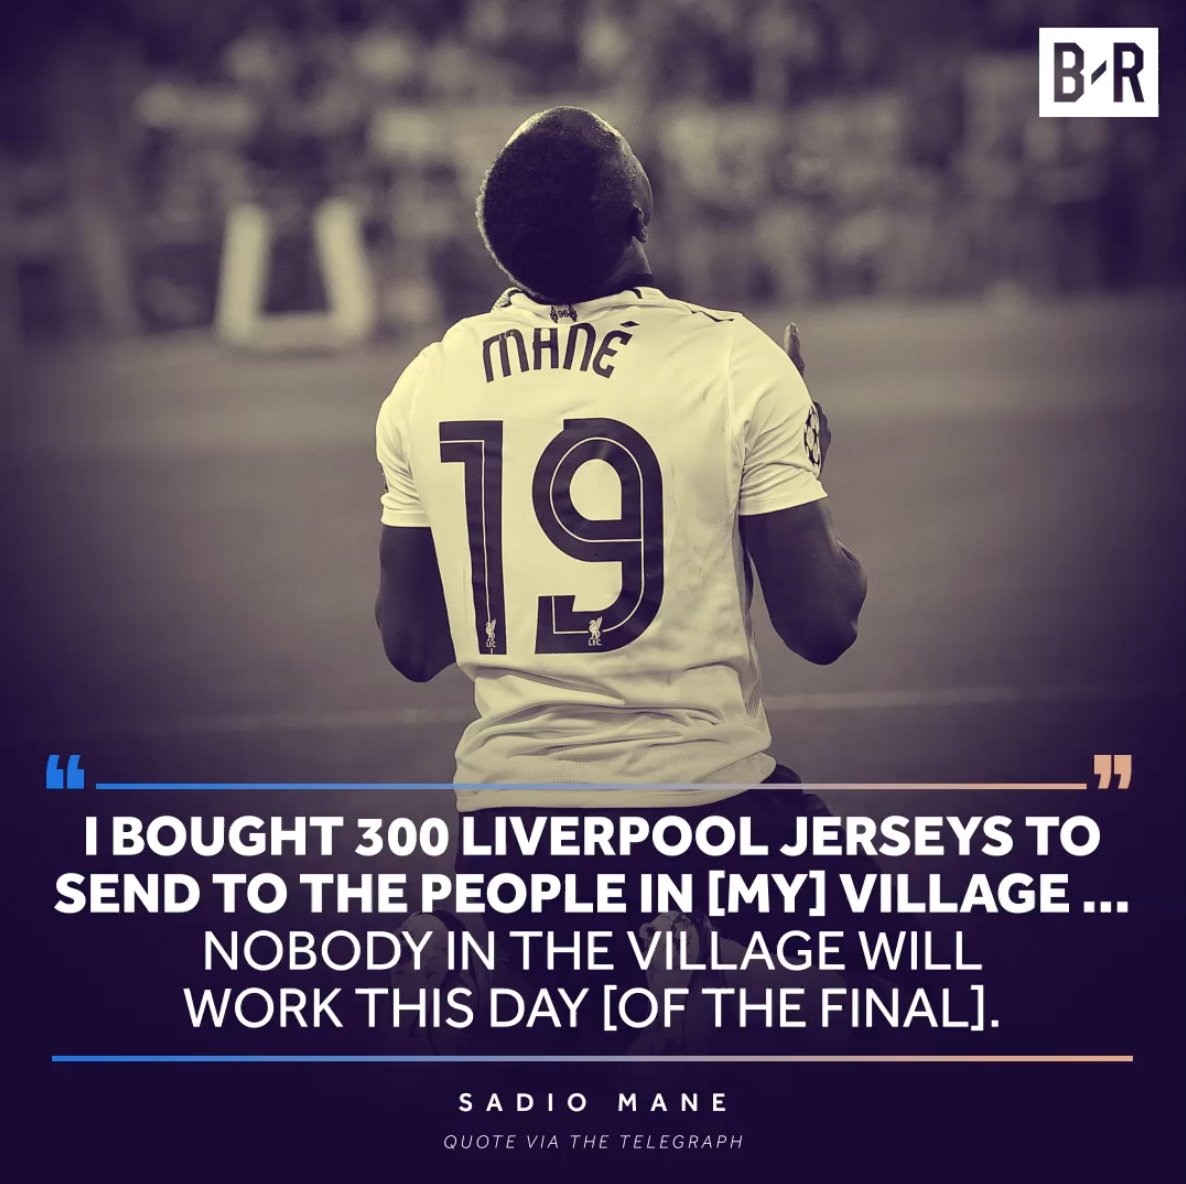 Sadio Mane has sent 300 Liverpool shirts to his village in Senegal ahead of the Champions League final 🇸🇳🙌